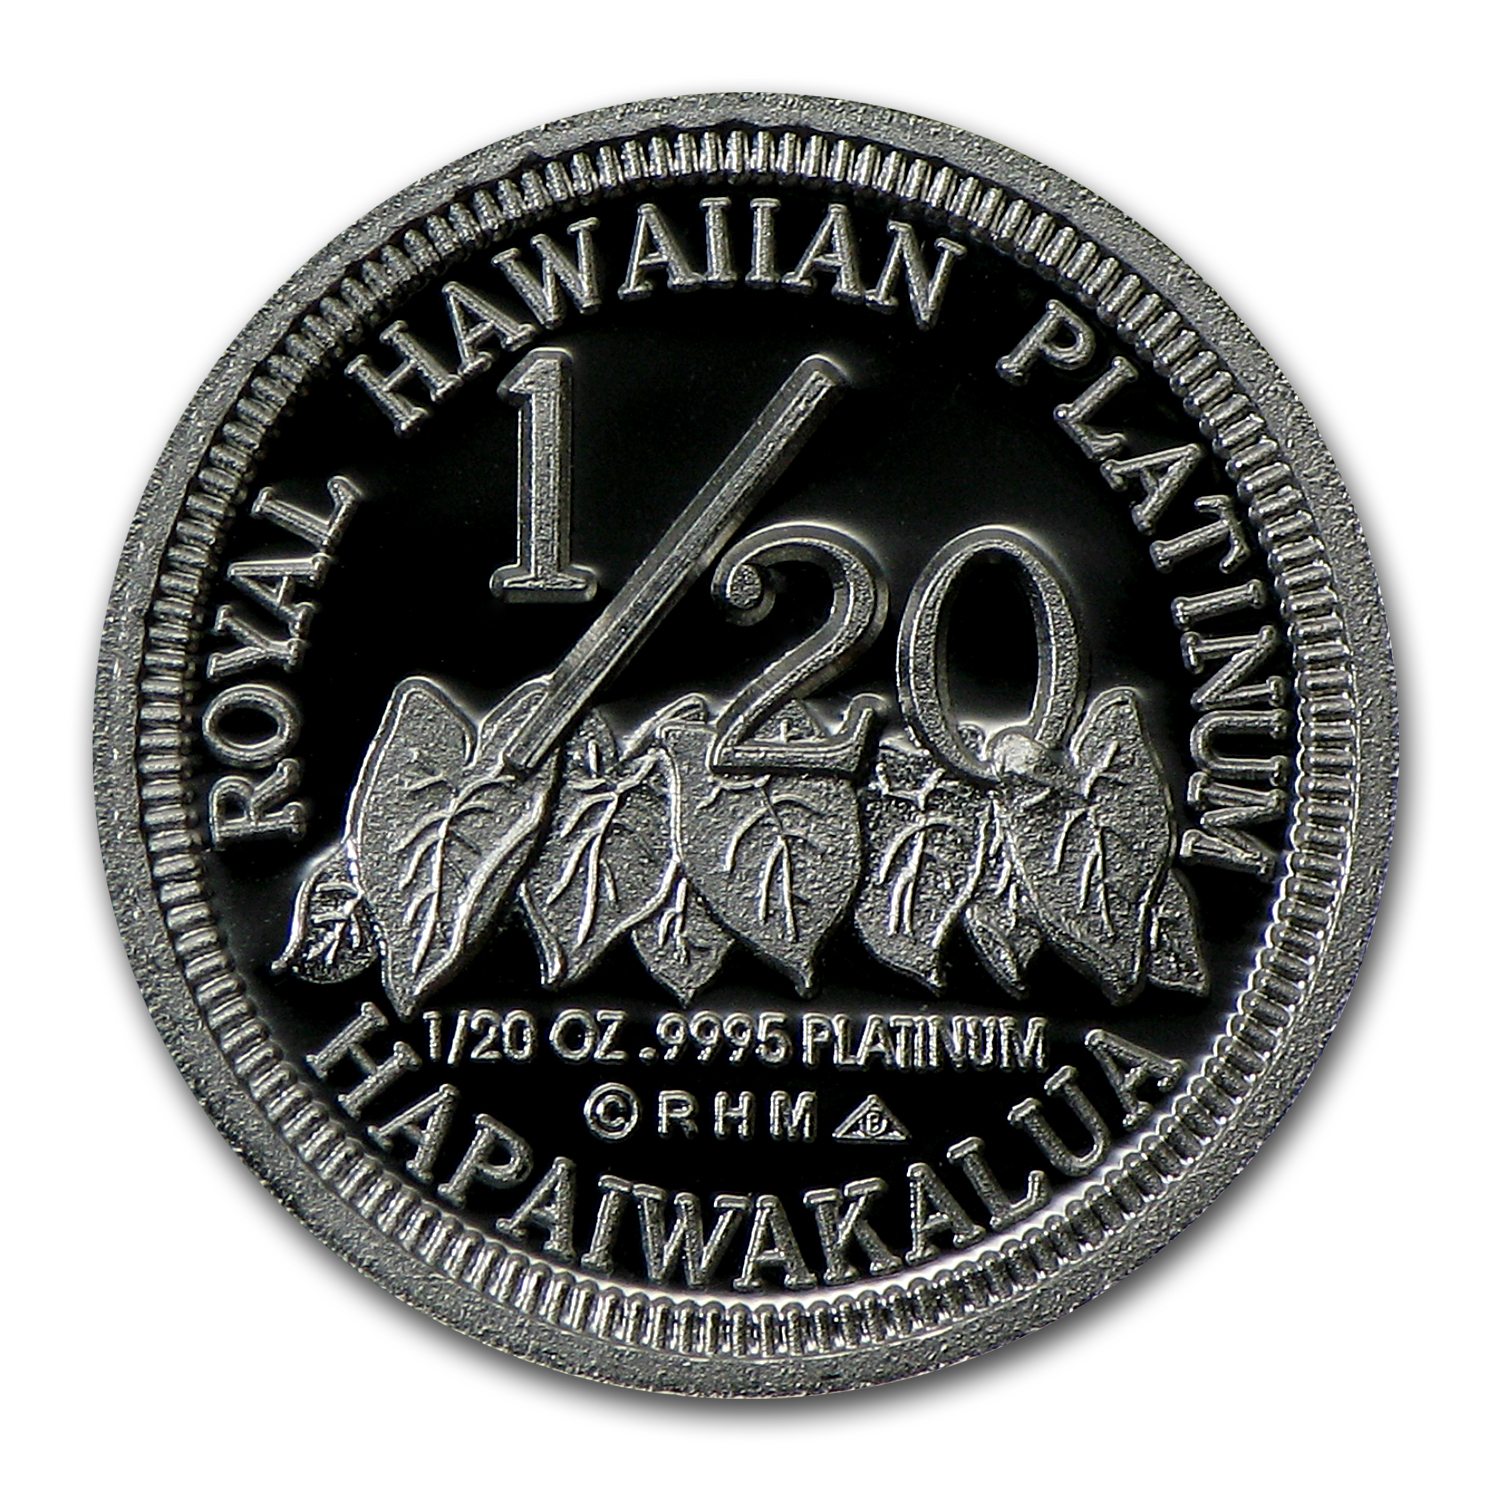 1997 1/20 oz Hawaiian Platinum King (Proof)